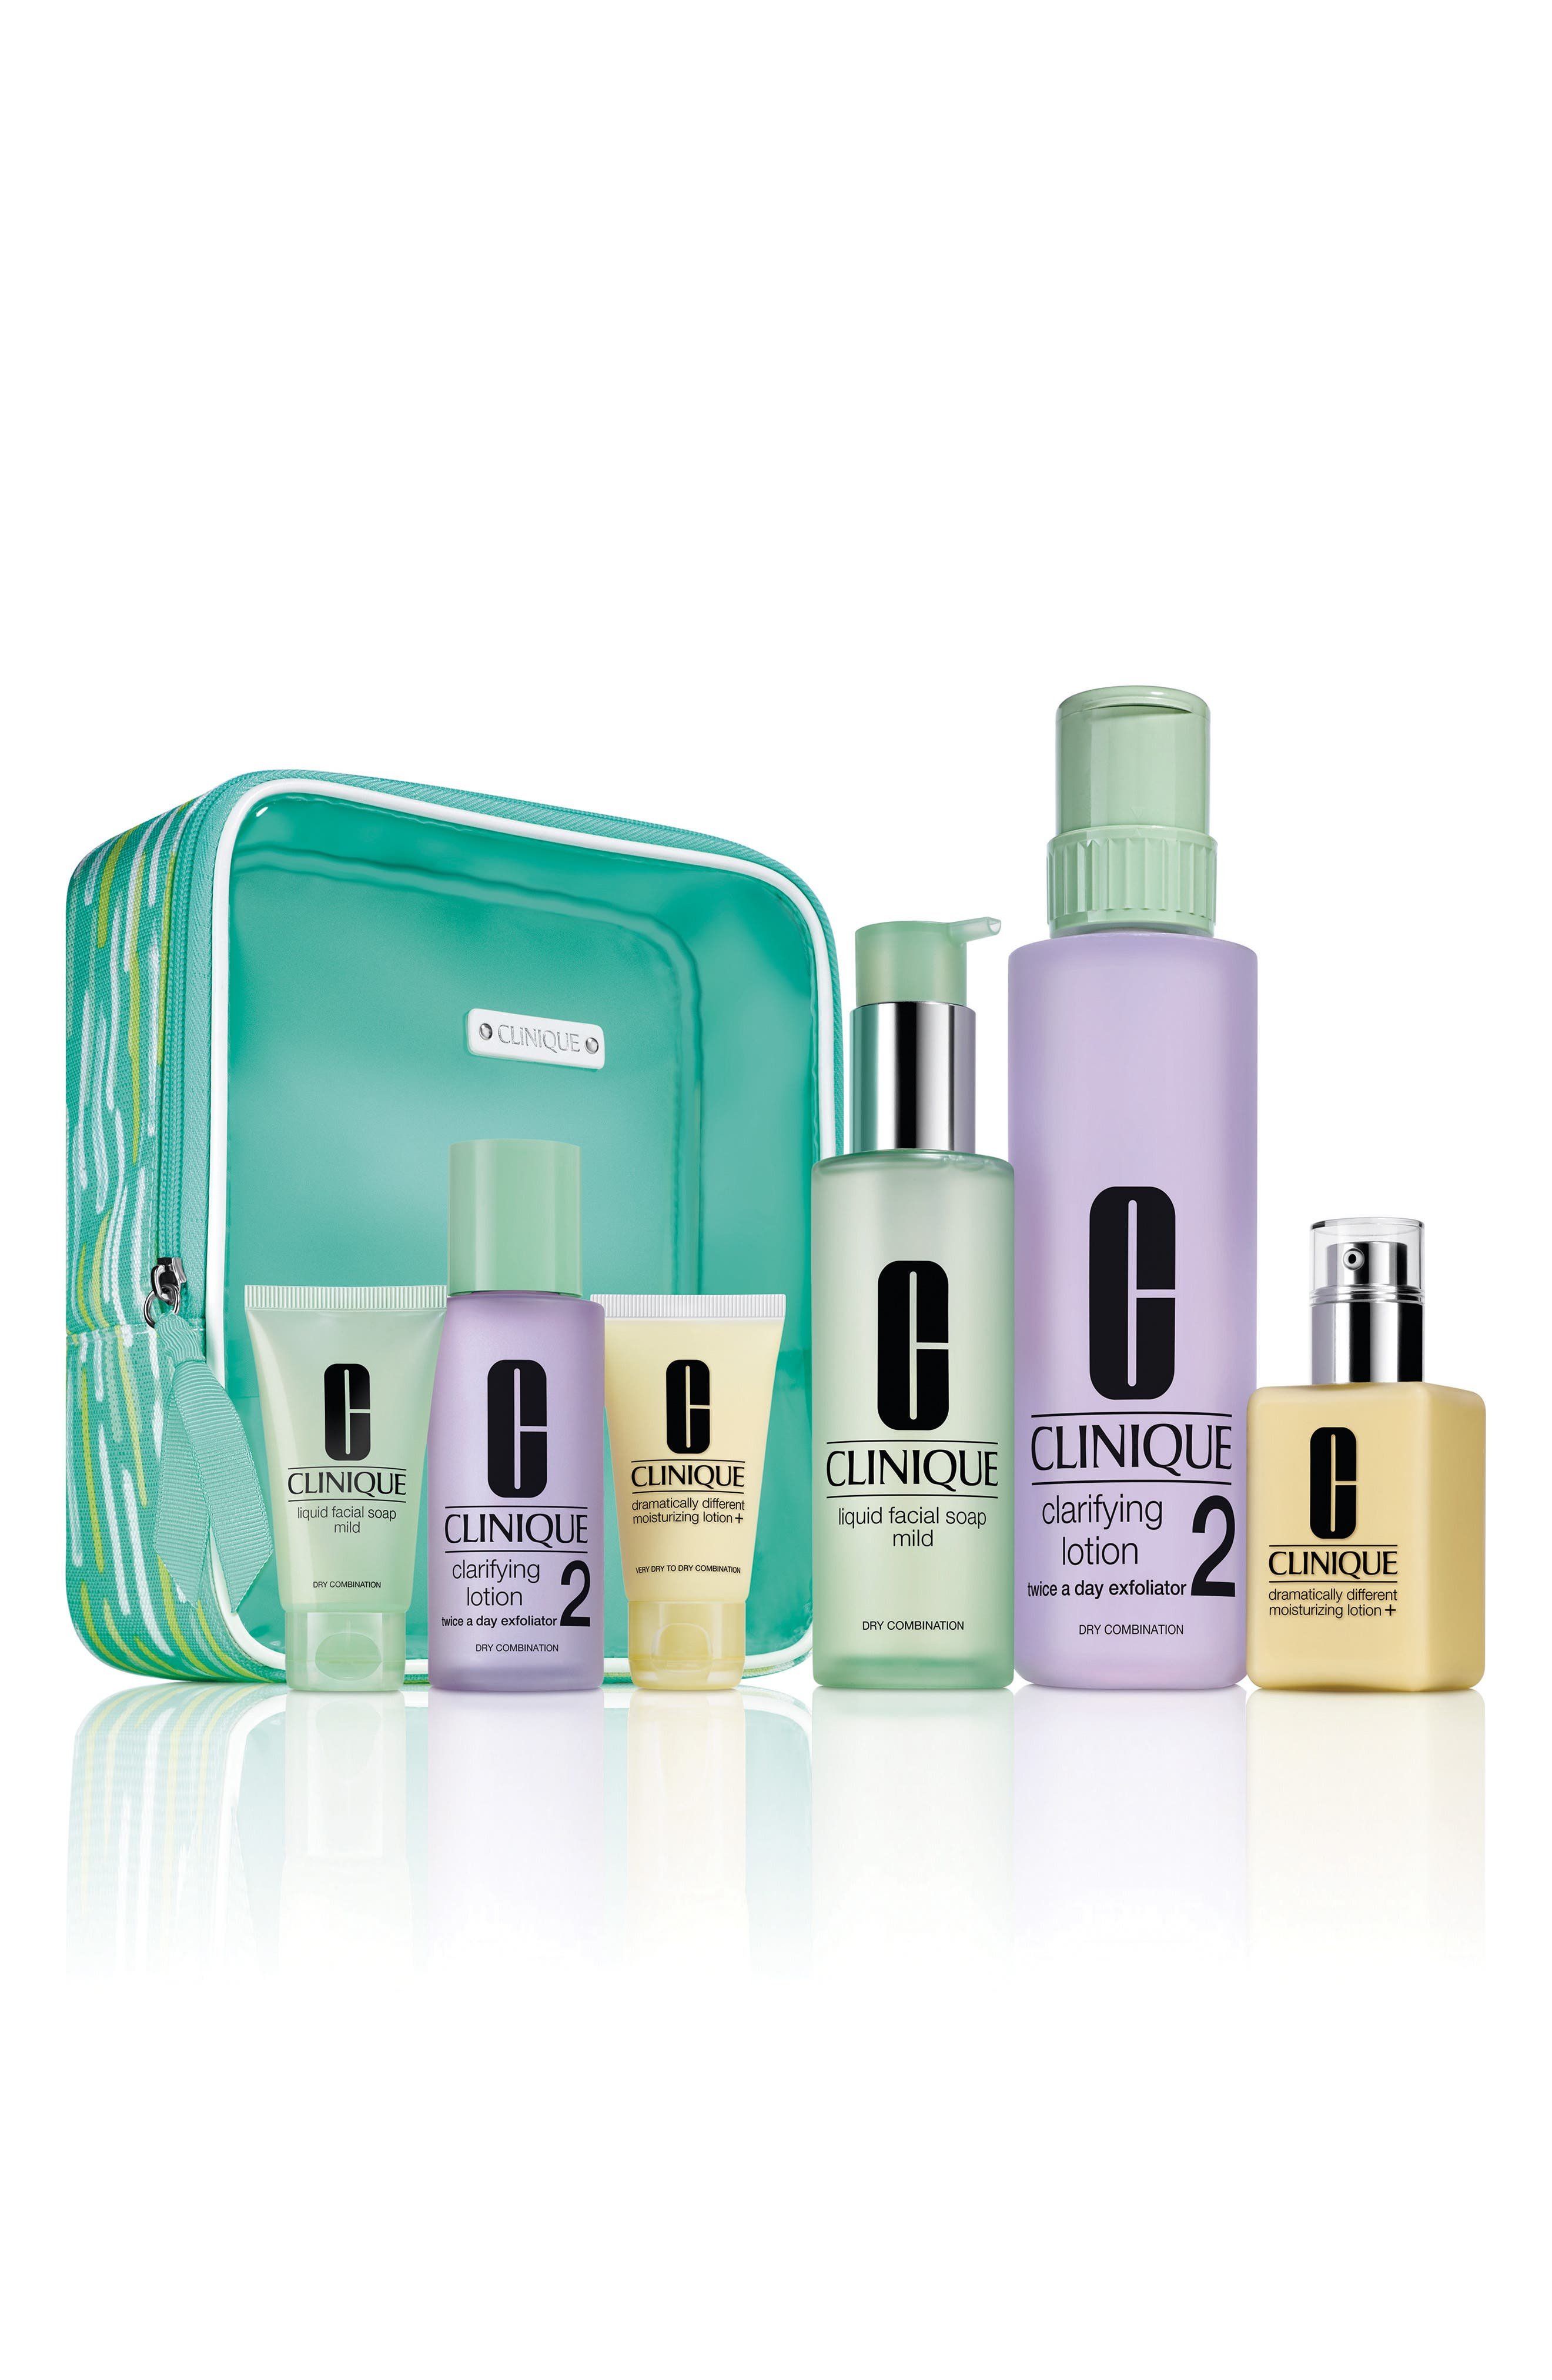 Alternate Image 1 Selected - Clinique Great Skin Everywhere Set for Skin Types I & II ($90 Value)